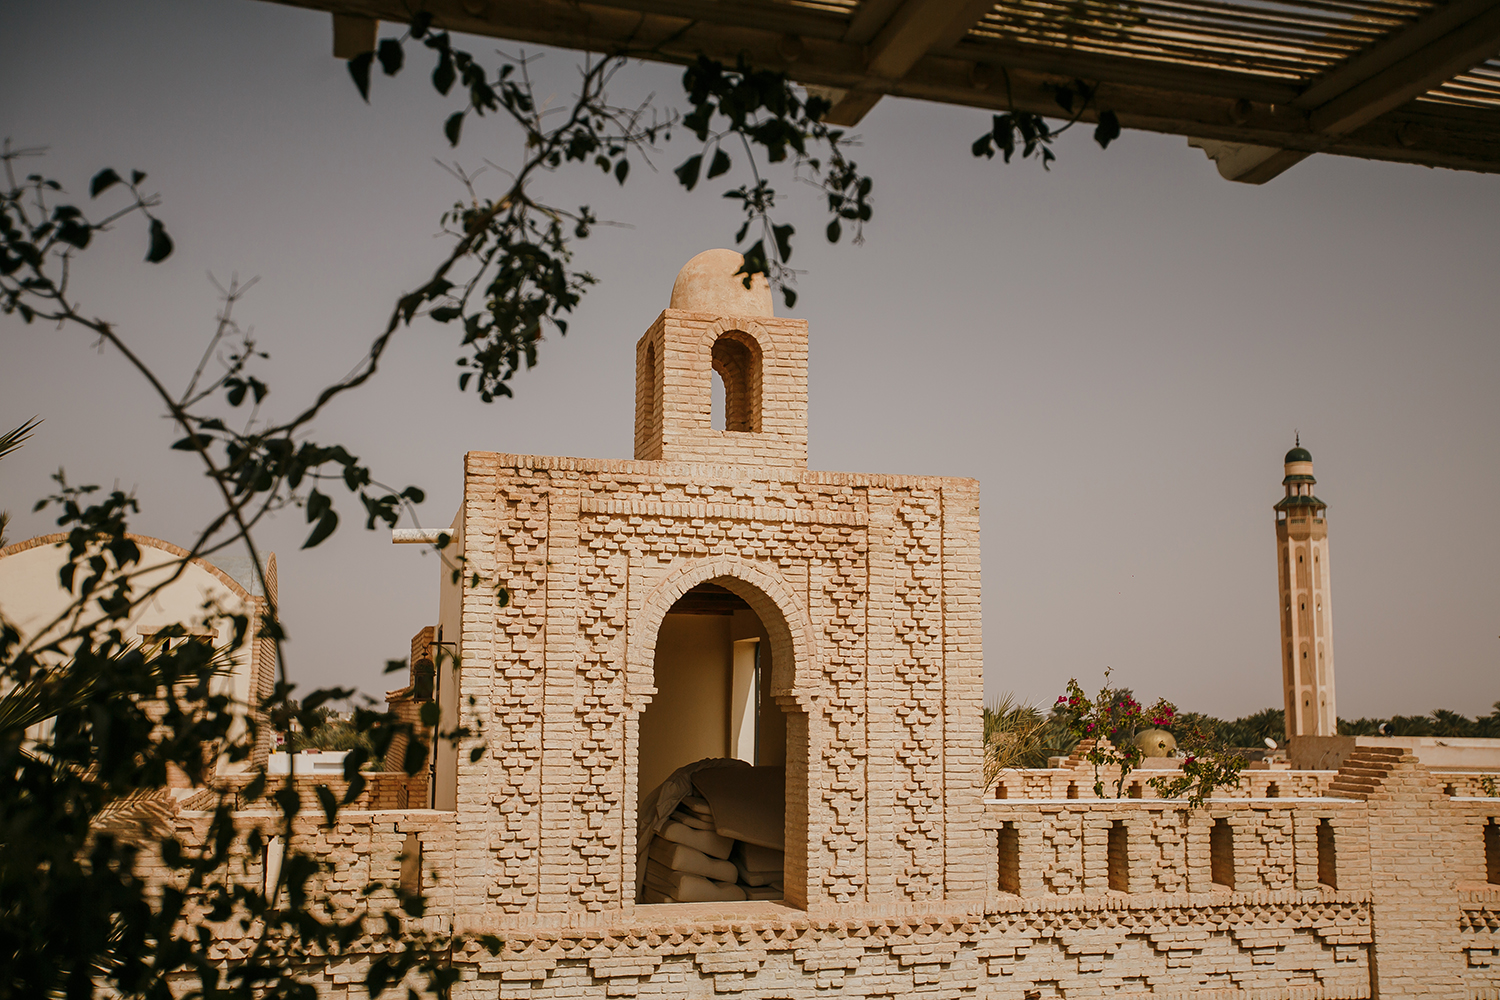 SN2_2375-sophie-narses-photographe-Tunisie-Voyage-book-shooting-geneve-mariage-suisse-famille-animaux-tirages-art-cours-photo-paysages-desert